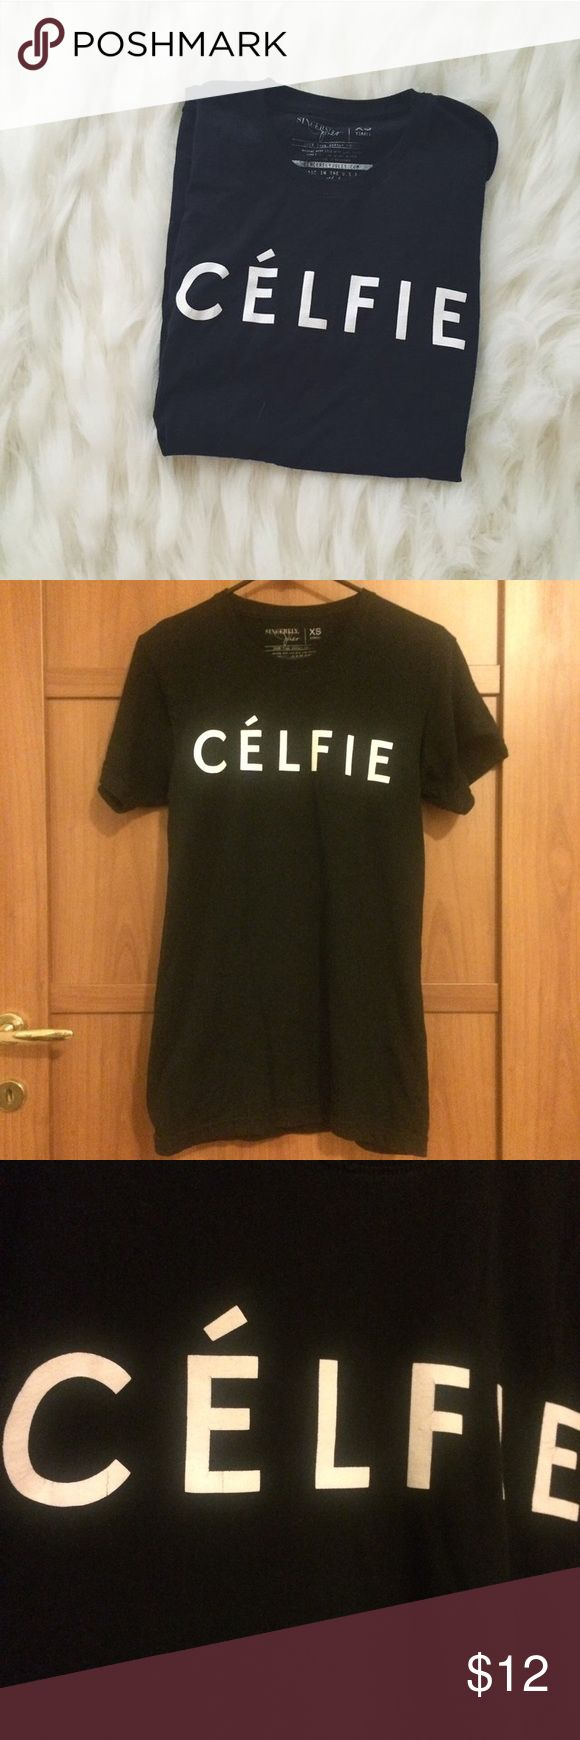 "Sincerely Jules Celfie in the style of Celine tee the original ""Celfie"" shirt in the style of ""Celine"" black with white words, slightly cracked but unnoticeable when worn. size xs and fits true to size Urban Outfitters Tops Tees - Short Sleeve"